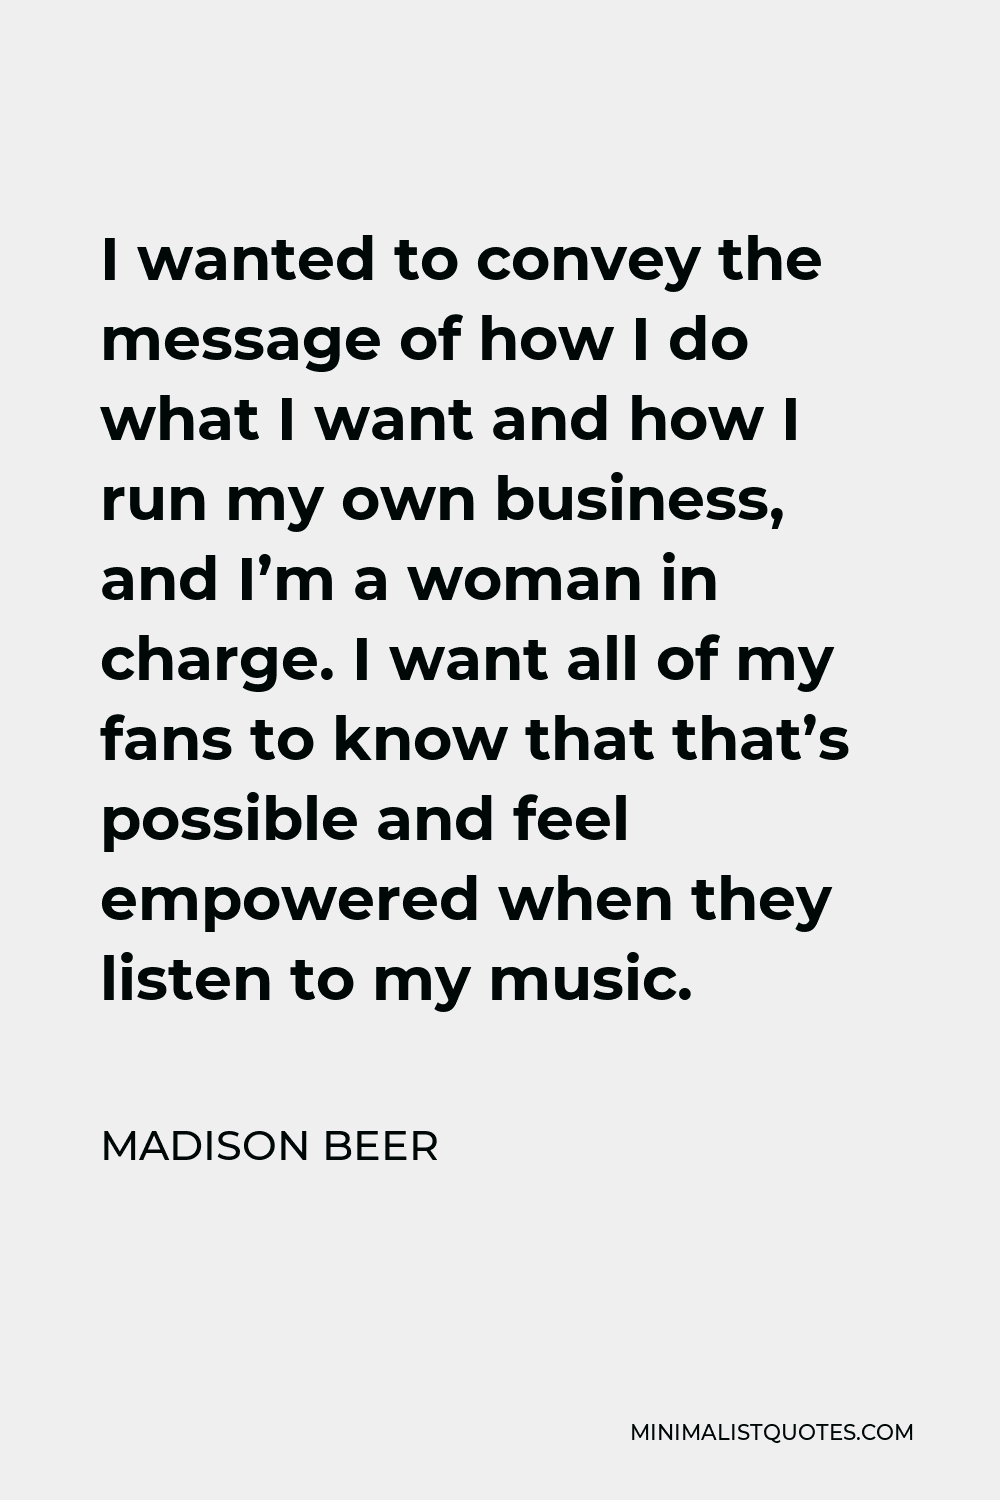 Madison Beer Quote - I wanted to convey the message of how I do what I want and how I run my own business, and I'm a woman in charge. I want all of my fans to know that that's possible and feel empowered when they listen to my music.